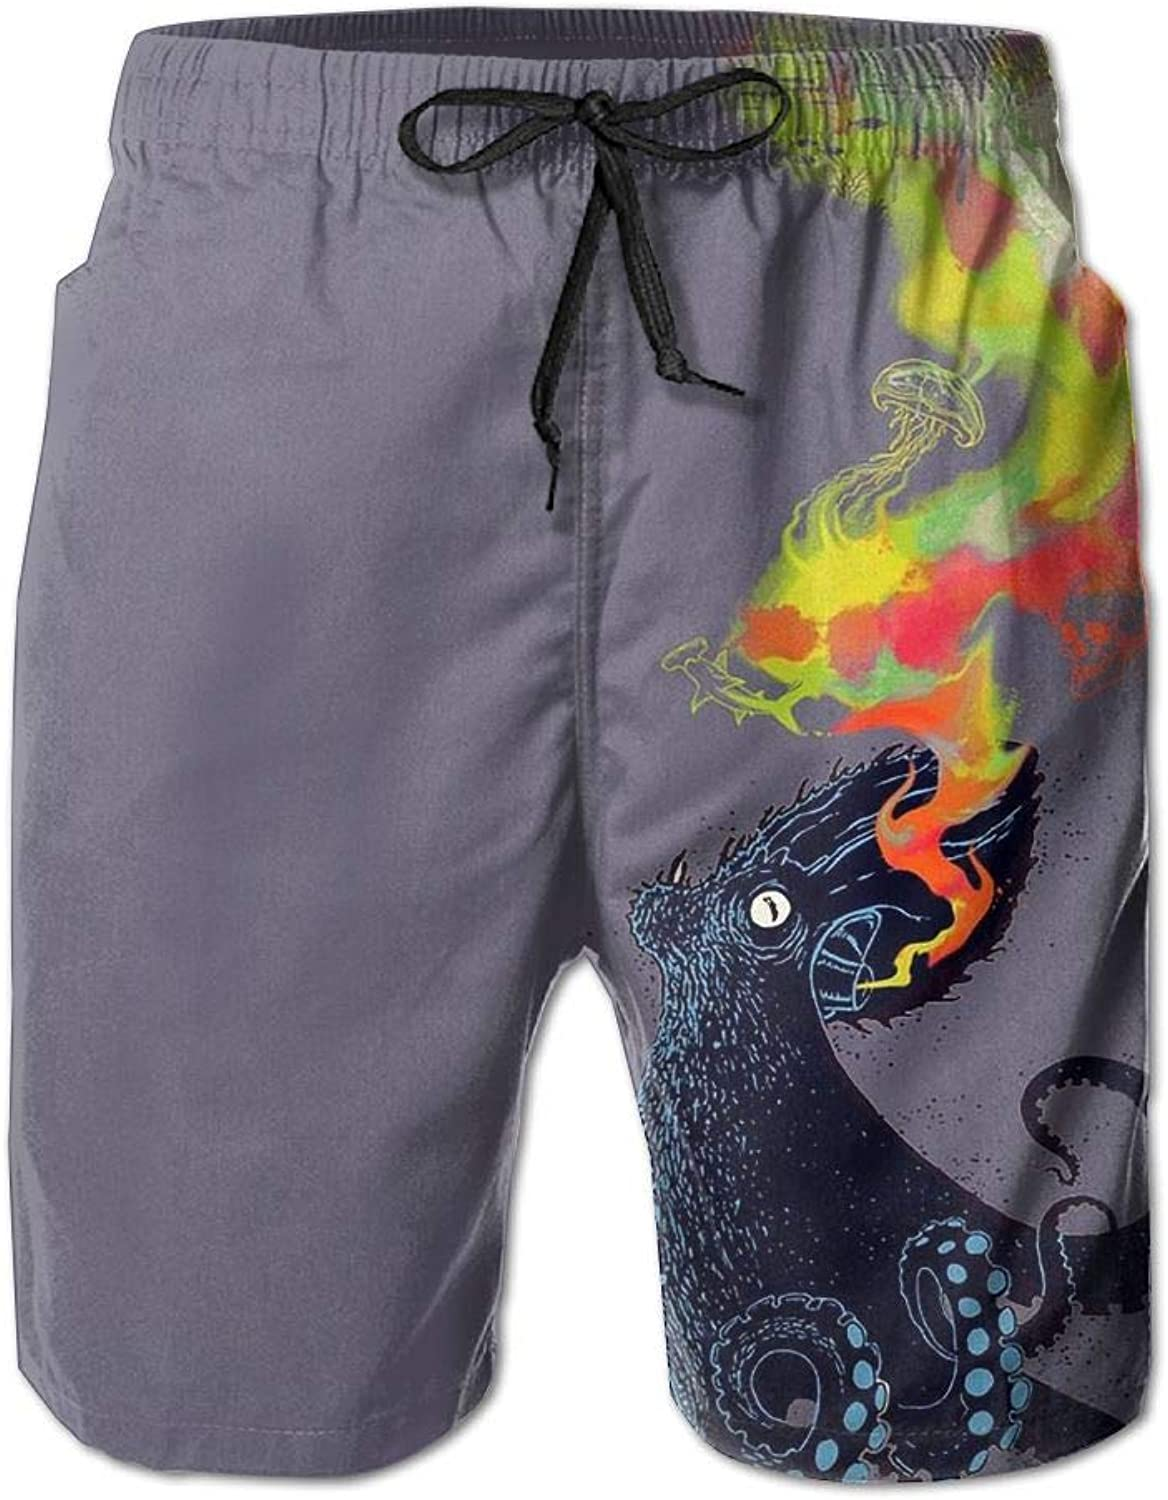 6098148ad0 Quick Dry Men's Beach Board Shorts Magic Octopus Octopus Octopus Surfing Swim  Trunks Beachwear With Pockets 161a68